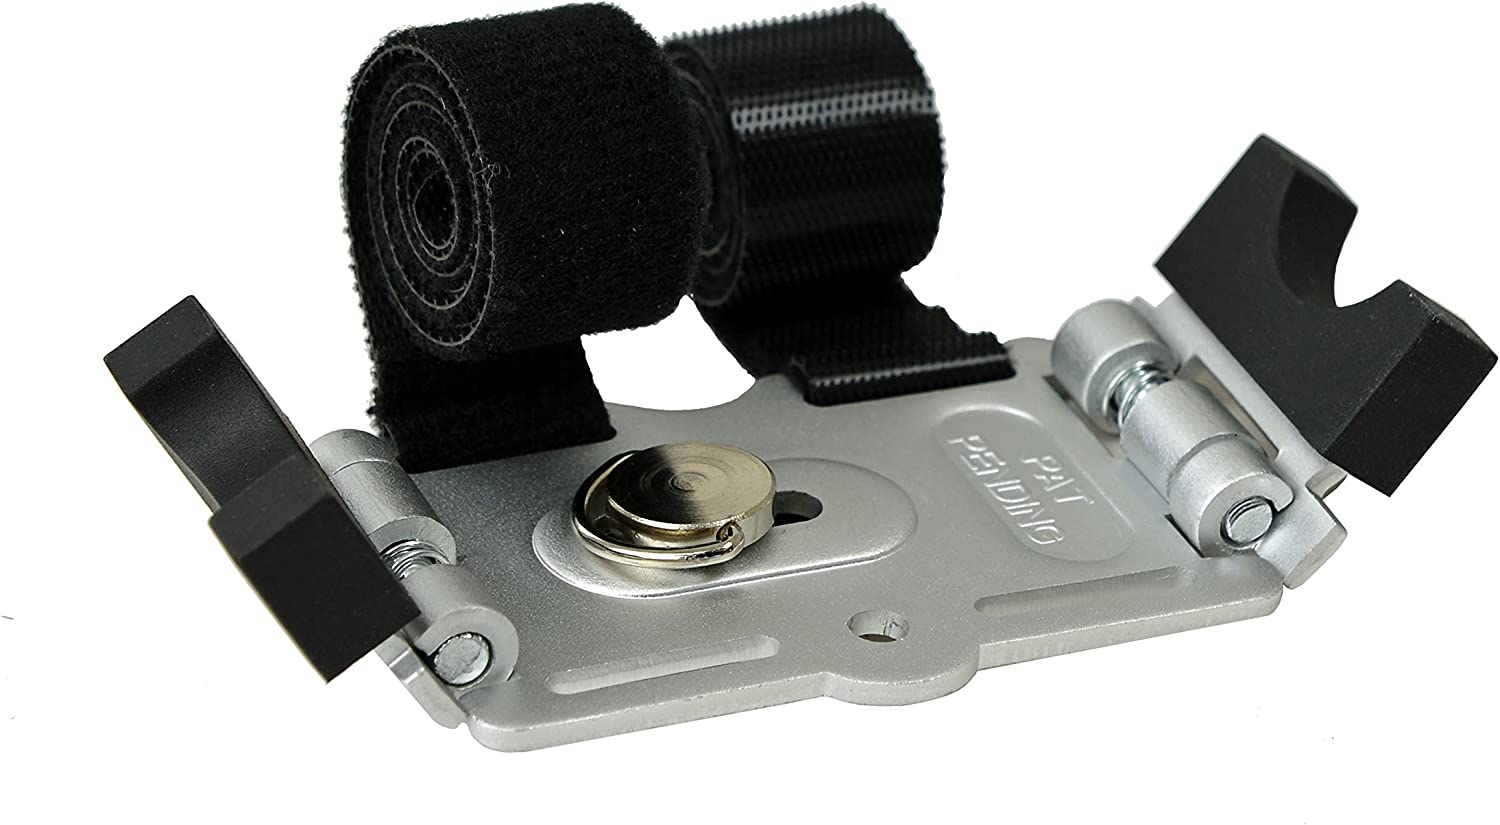 Hama AHA 70J Kit with Velcro Stand for Bicycle Mount for Canon 220/285/275/265/255/160/165/170/175/180/155/510